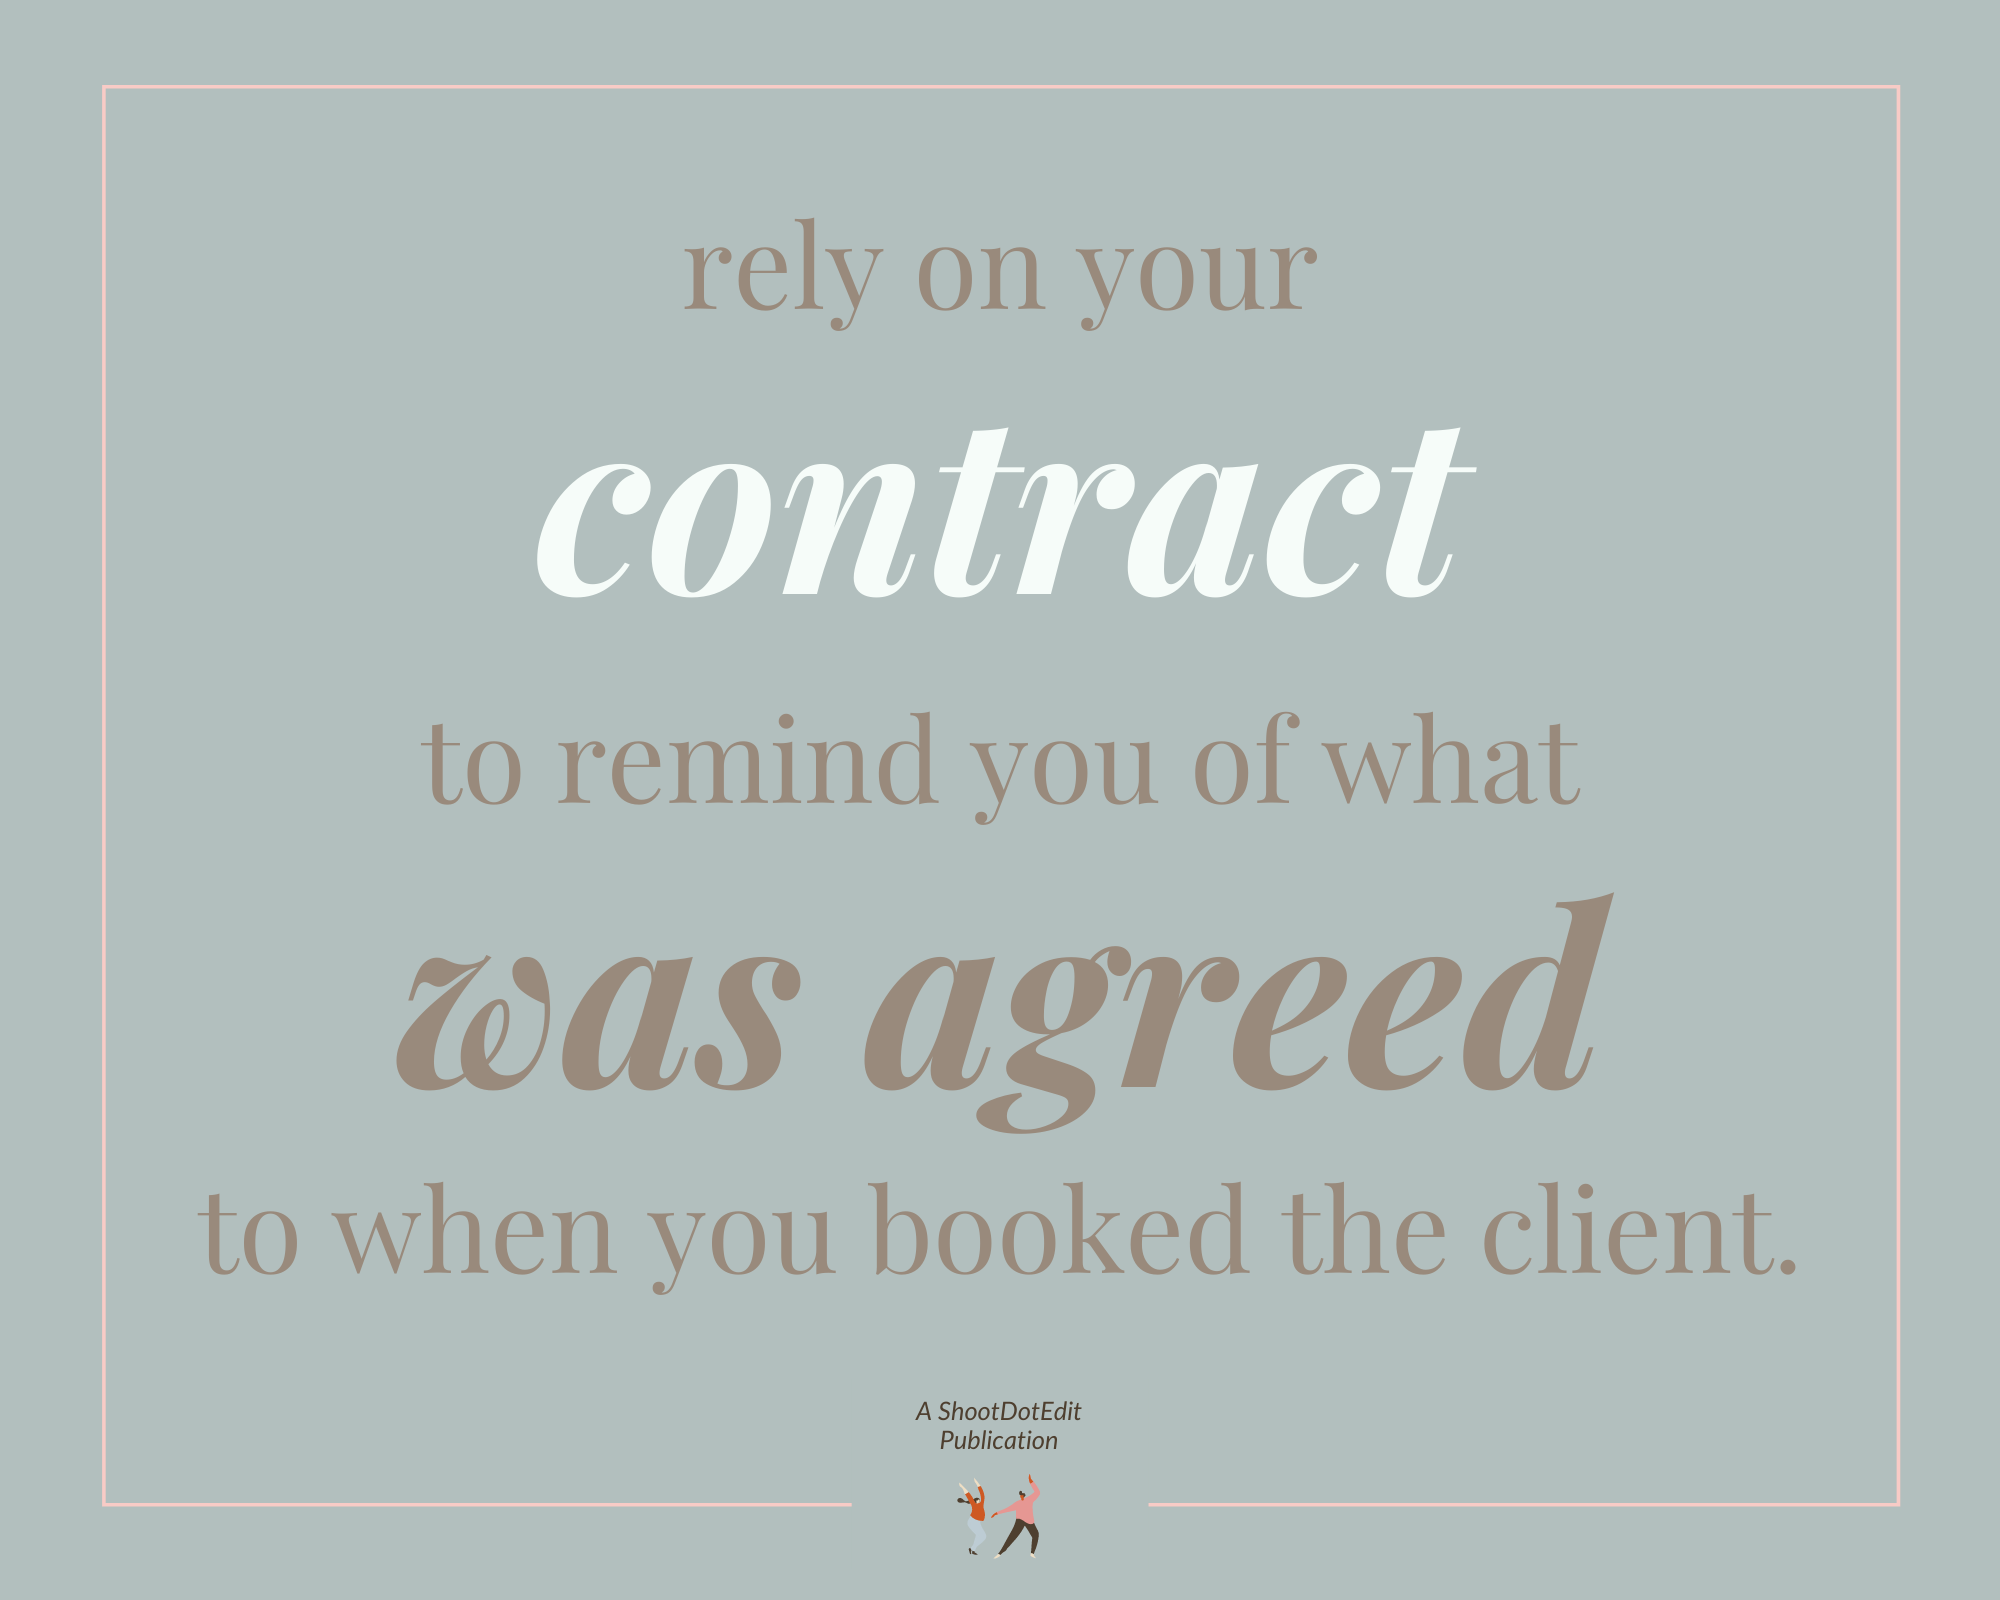 Infographic stating rely on your contract to remind you of what was agreed to when you booked the client